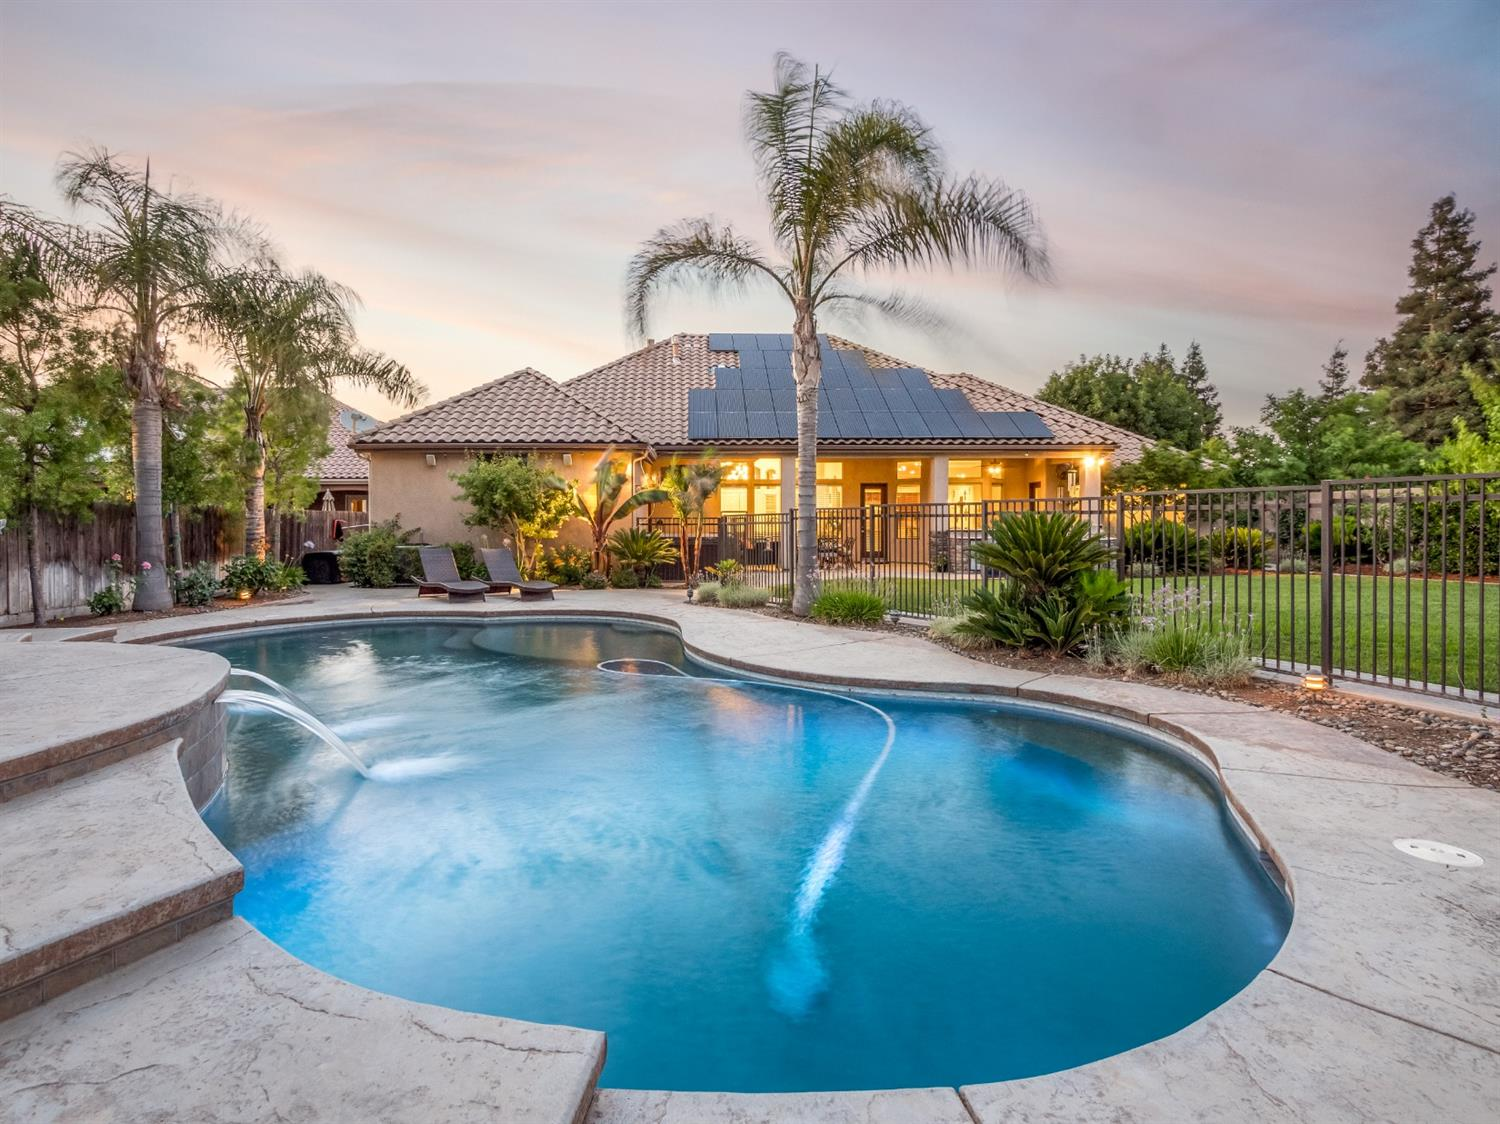 Set on a sprawling 18,800 sqft lot in Fig Garden Estates, one of Fresno's most prestigious neighborhoods, you will find serenity redefined. Tucked in behind your wrought-iron gate is a cutting-edge courtyard modern paradise built by Image Homes Inc. w/the world's finest appointments: 5 bedrooms, 3 bathrooms, 3,631 sqft. w/62 solar panels of owned solar. Experience the pinnacle of sophistication & modern design w/quality finishes throughout from your chef inspired kitchen with stainless-steel Kitchen-Aid pro appliances, double oven, custom cabinetry for your wine collection & built in cooler and ice maker. Entertain all summers in your spacious backyard and lounge by your Pebble Tec Pool with waterfall features & dining space. Start the outdoor built in bbq grill for a large outdoor dinner parties. This lovely home also has multiple fruit trees & over 10 feet of garden area. Why settle for anything less than the absolute best? Welcome home.